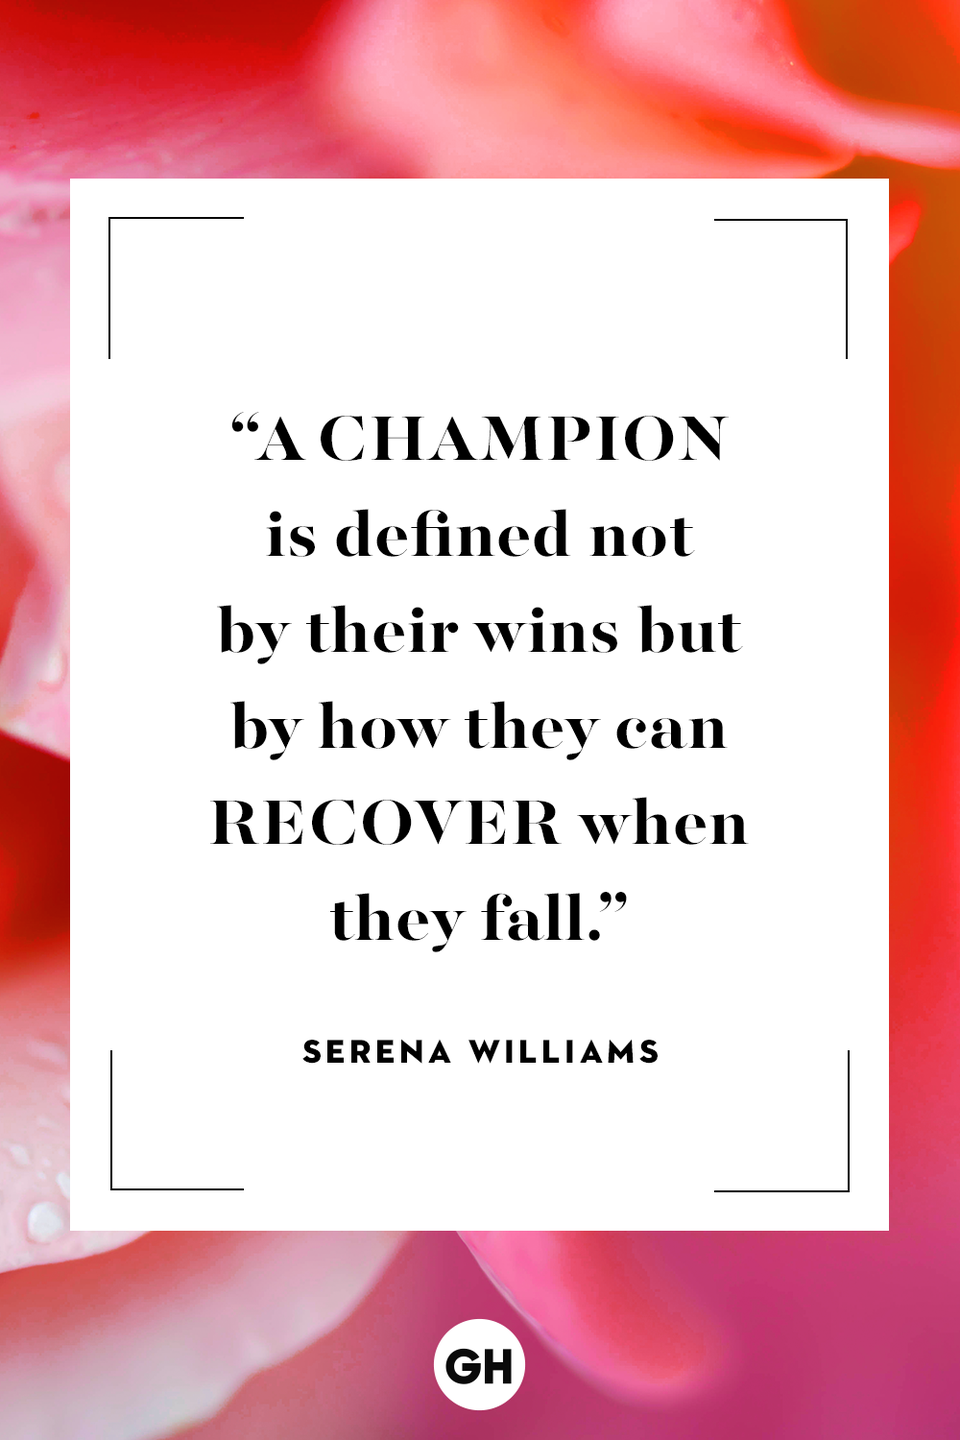 <p>A champion is defined not by their wins but by how they can recover when they fall.</p>